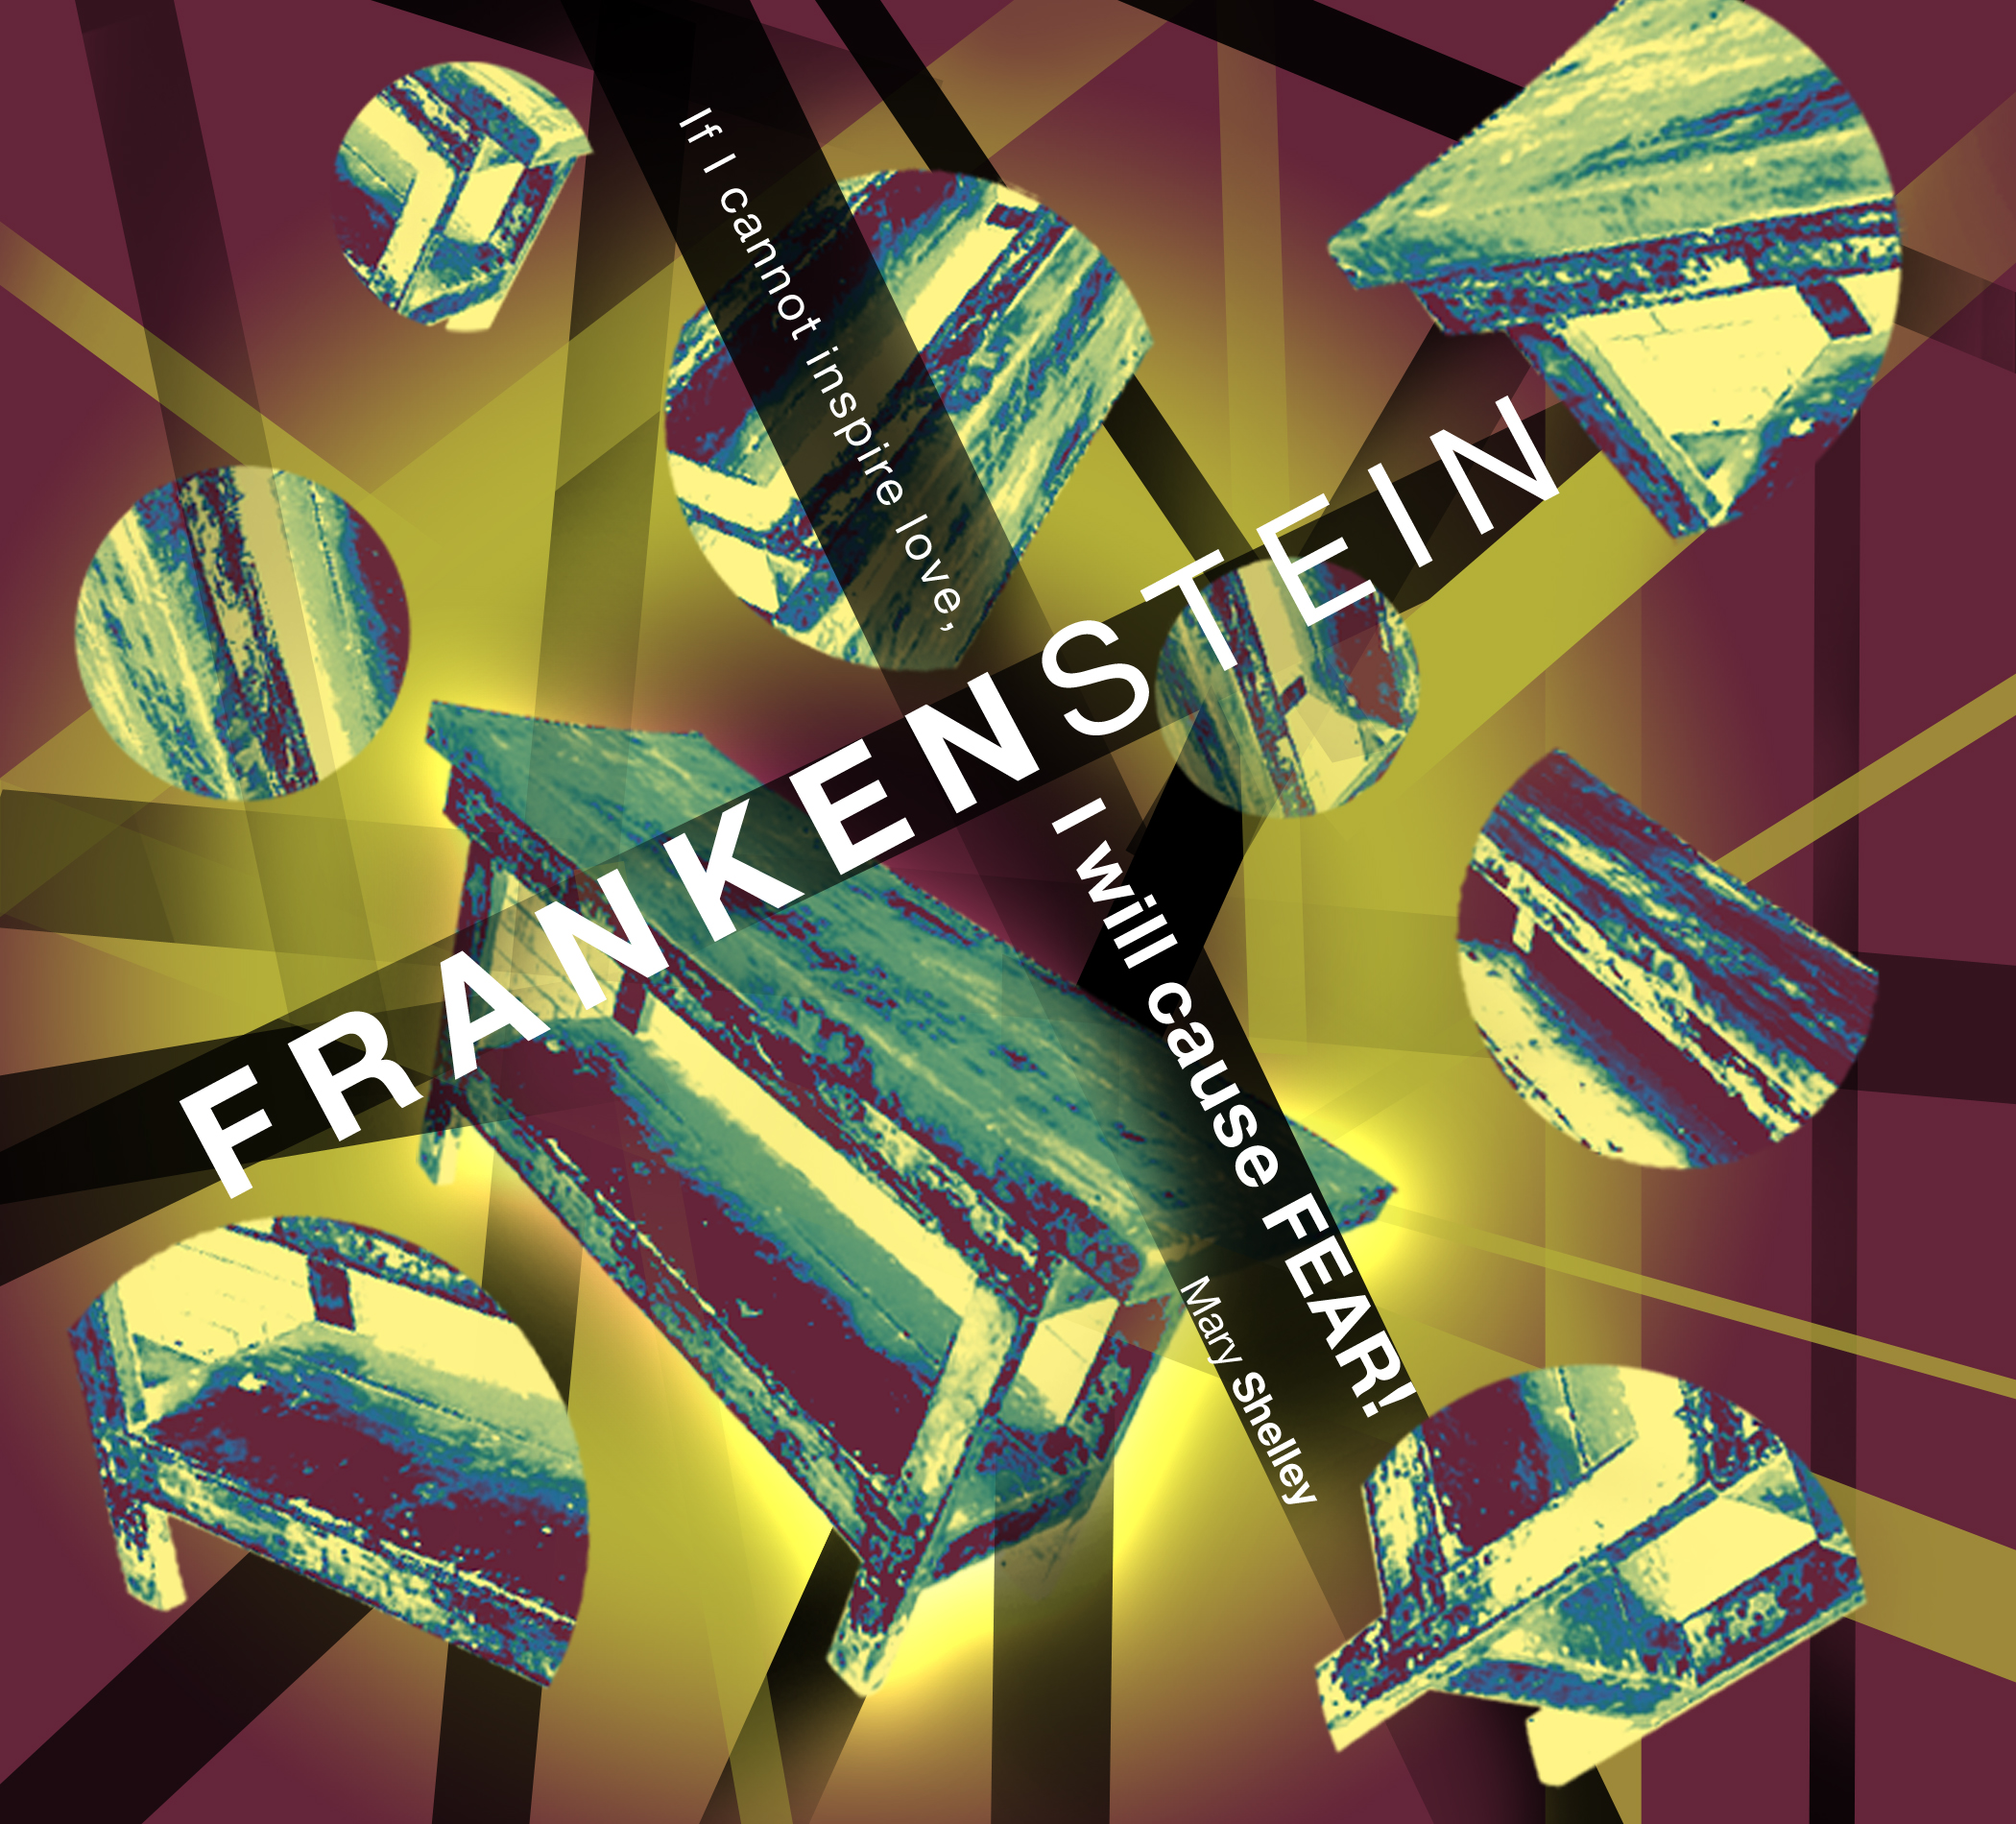 frankenstein theme Mary shelley's frankenstein is the book chosen for this year's new student book  project all new students will be reading the book this summer.